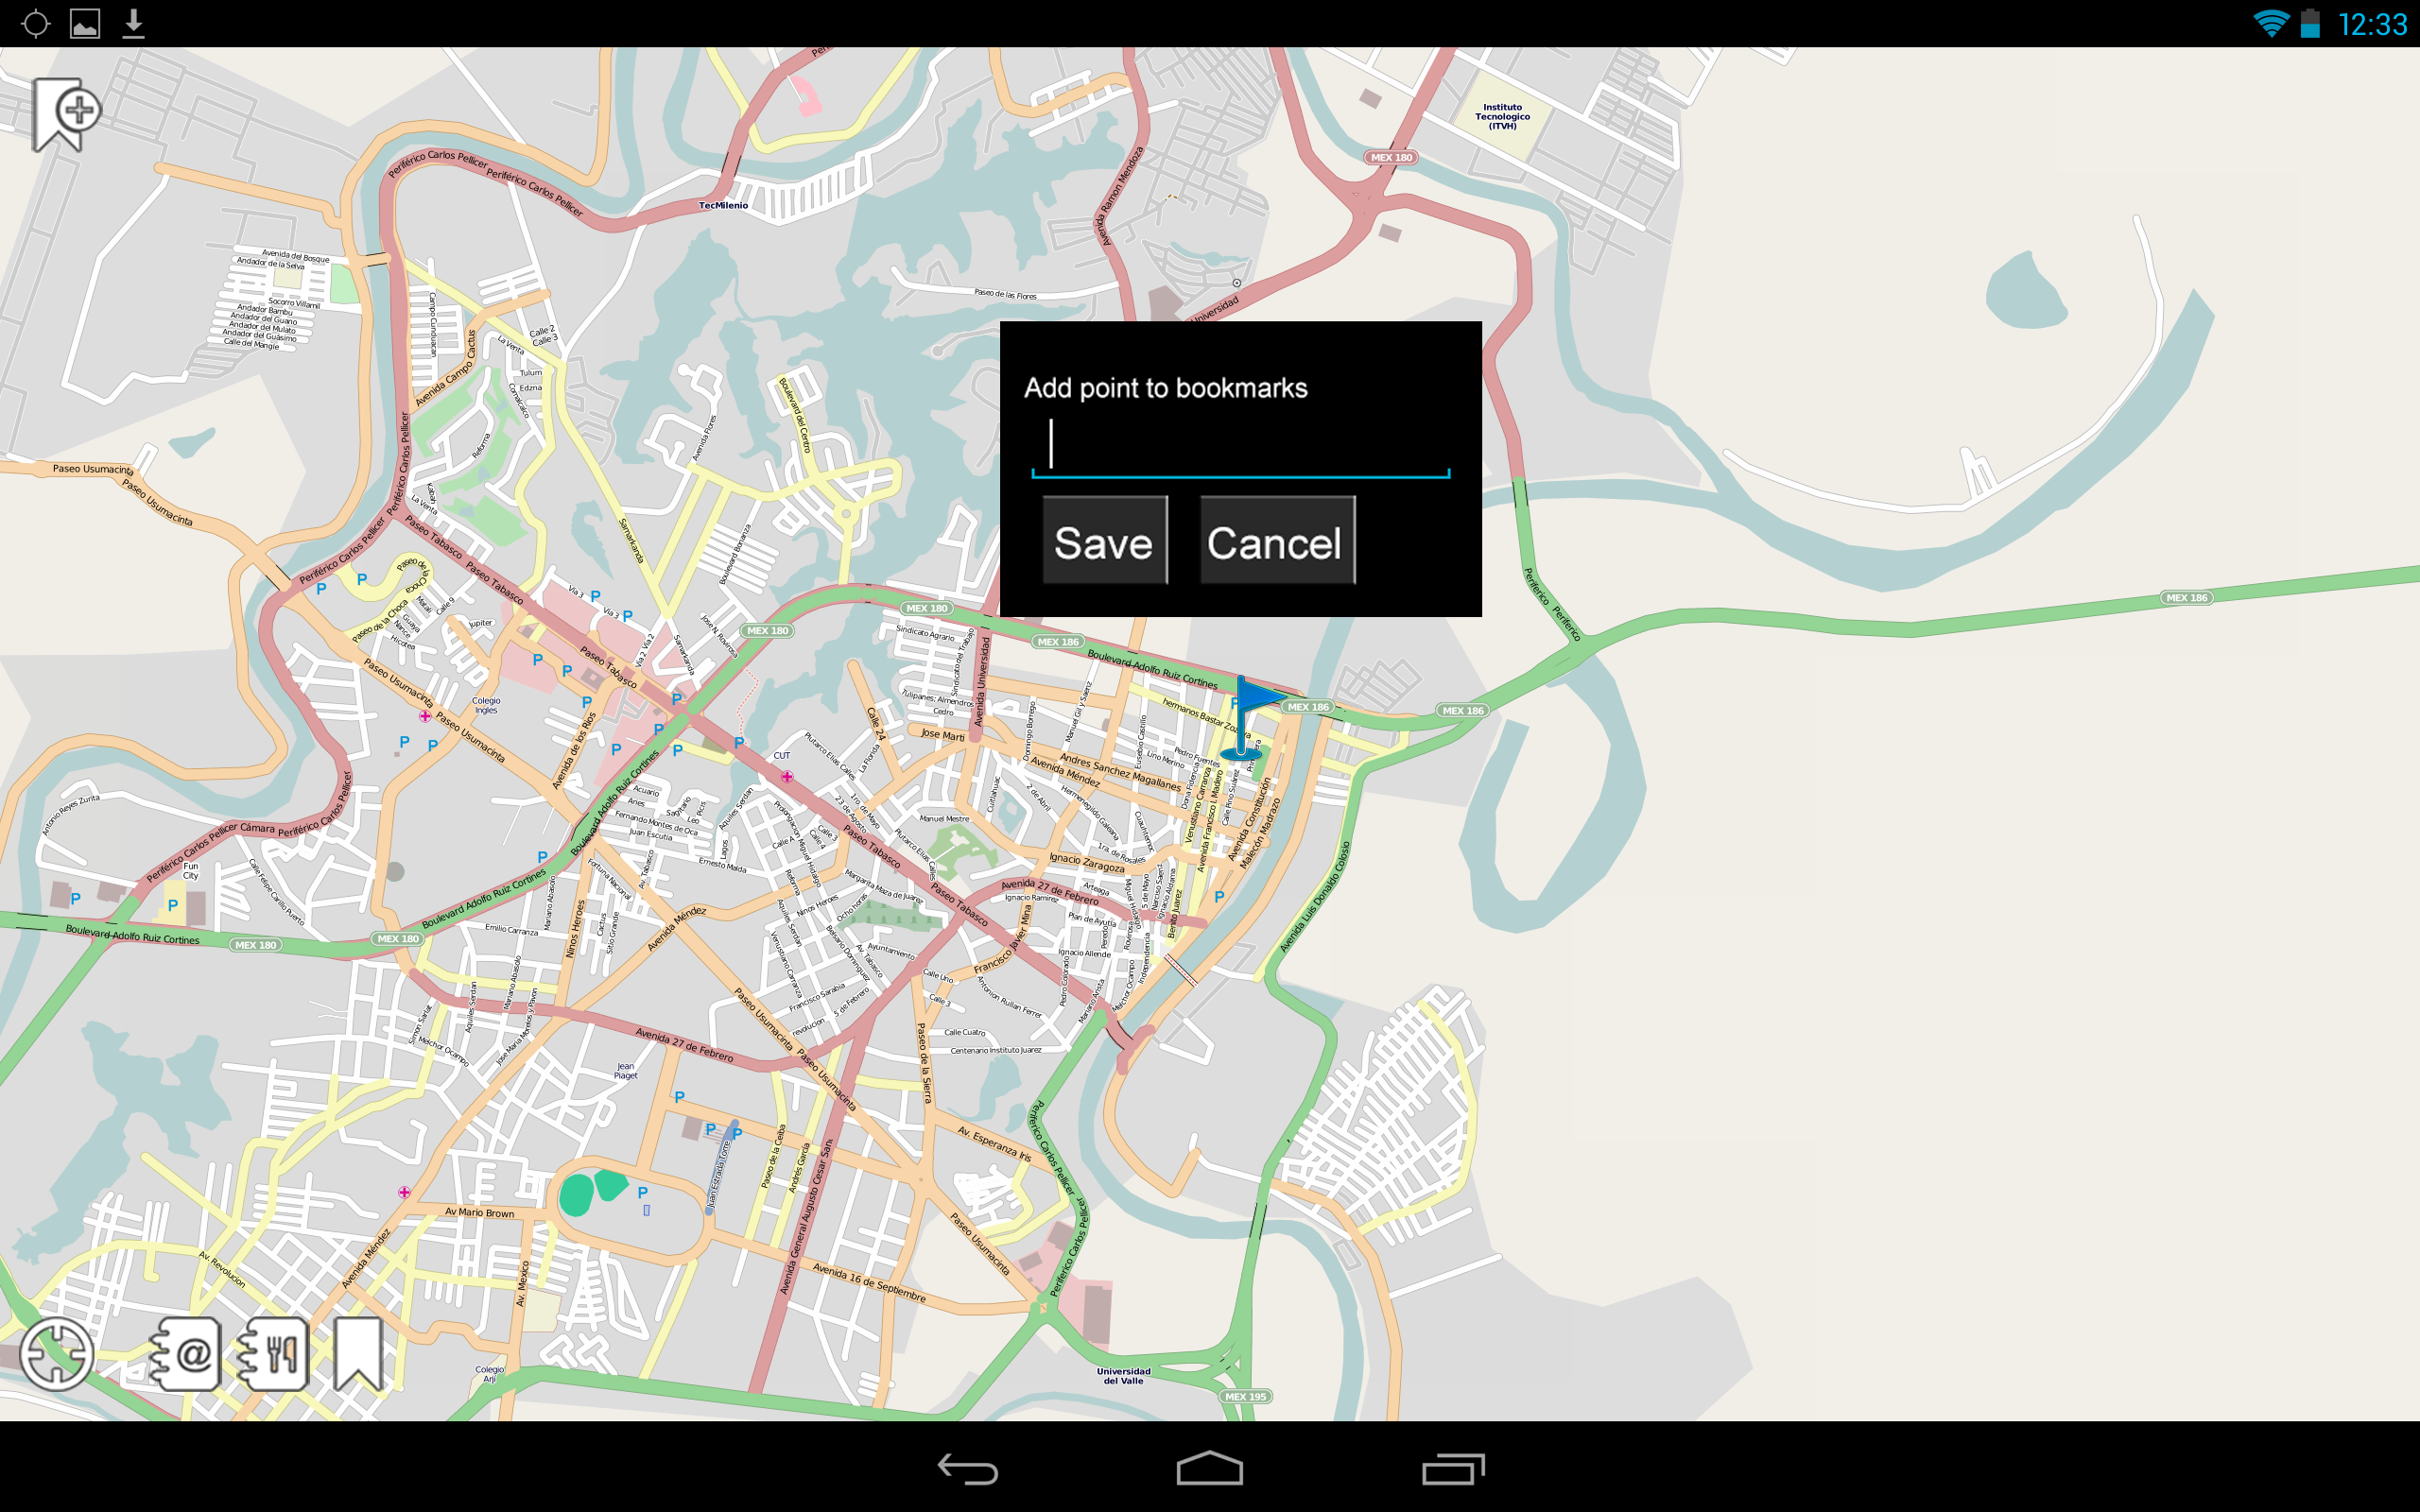 Amazon.com: Villahermosa, Mexico Offline Map - Smart Sulutions: Appstore for Android